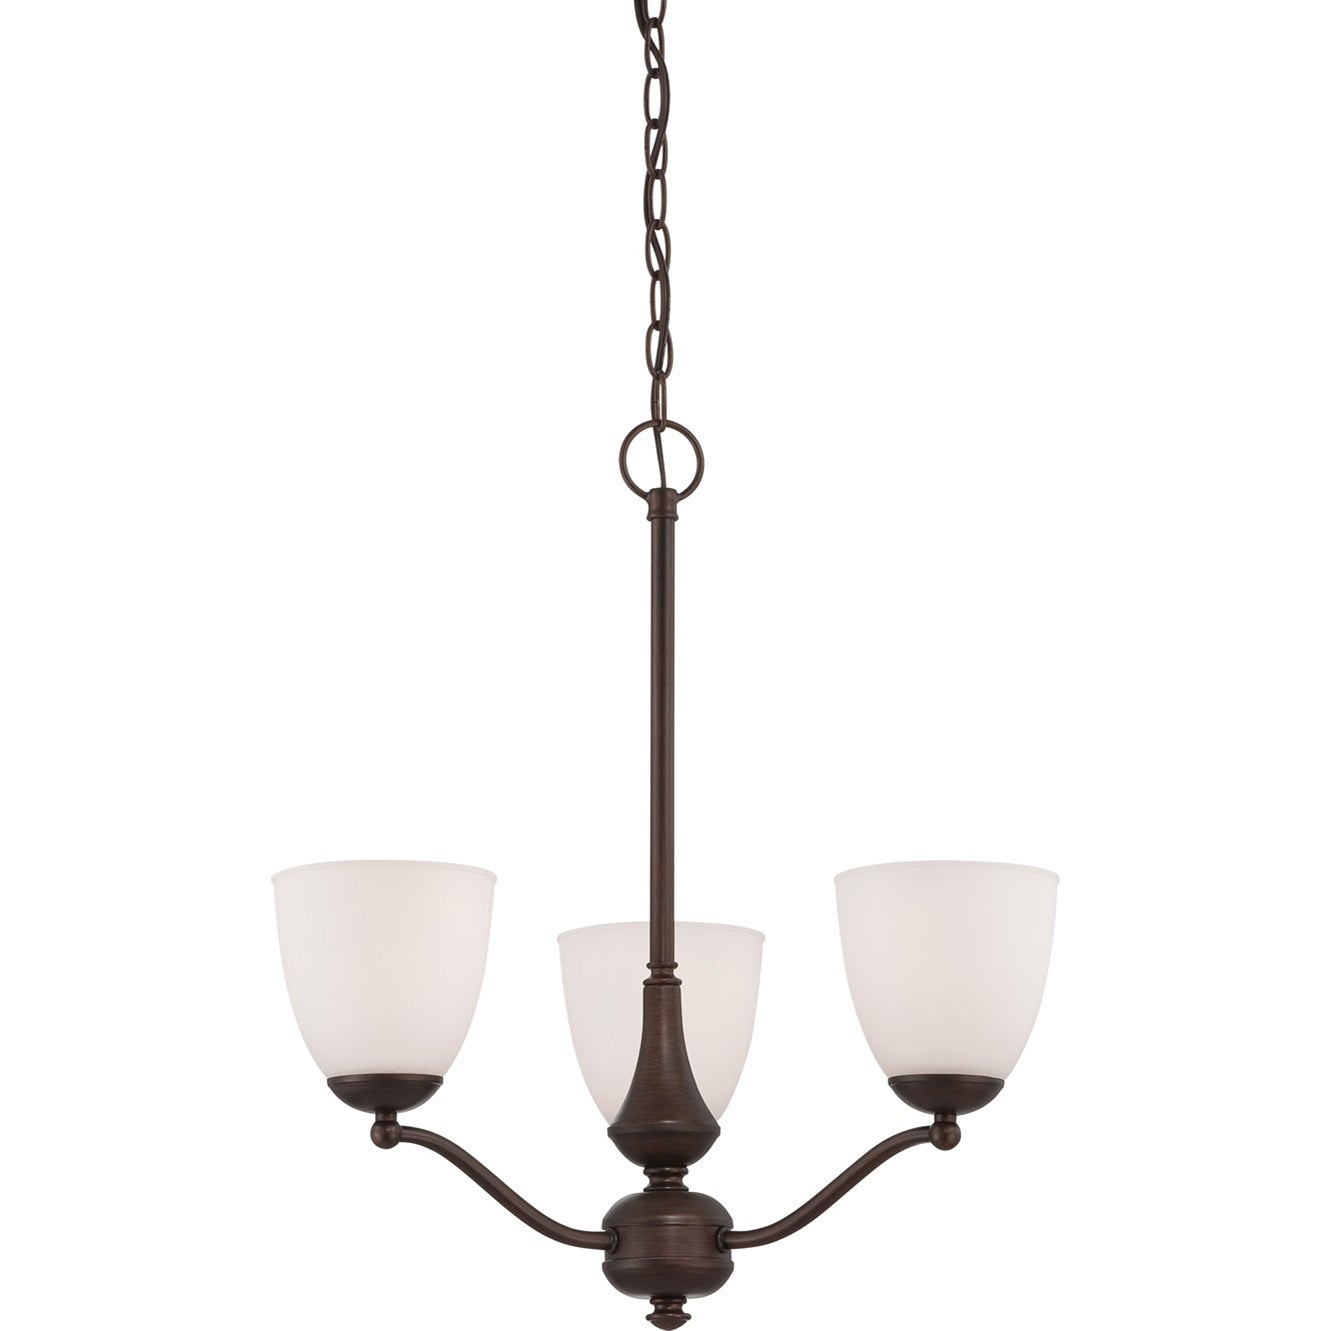 Nuvo Patton Traditional Three-Light Prairie Bronze Chandelier